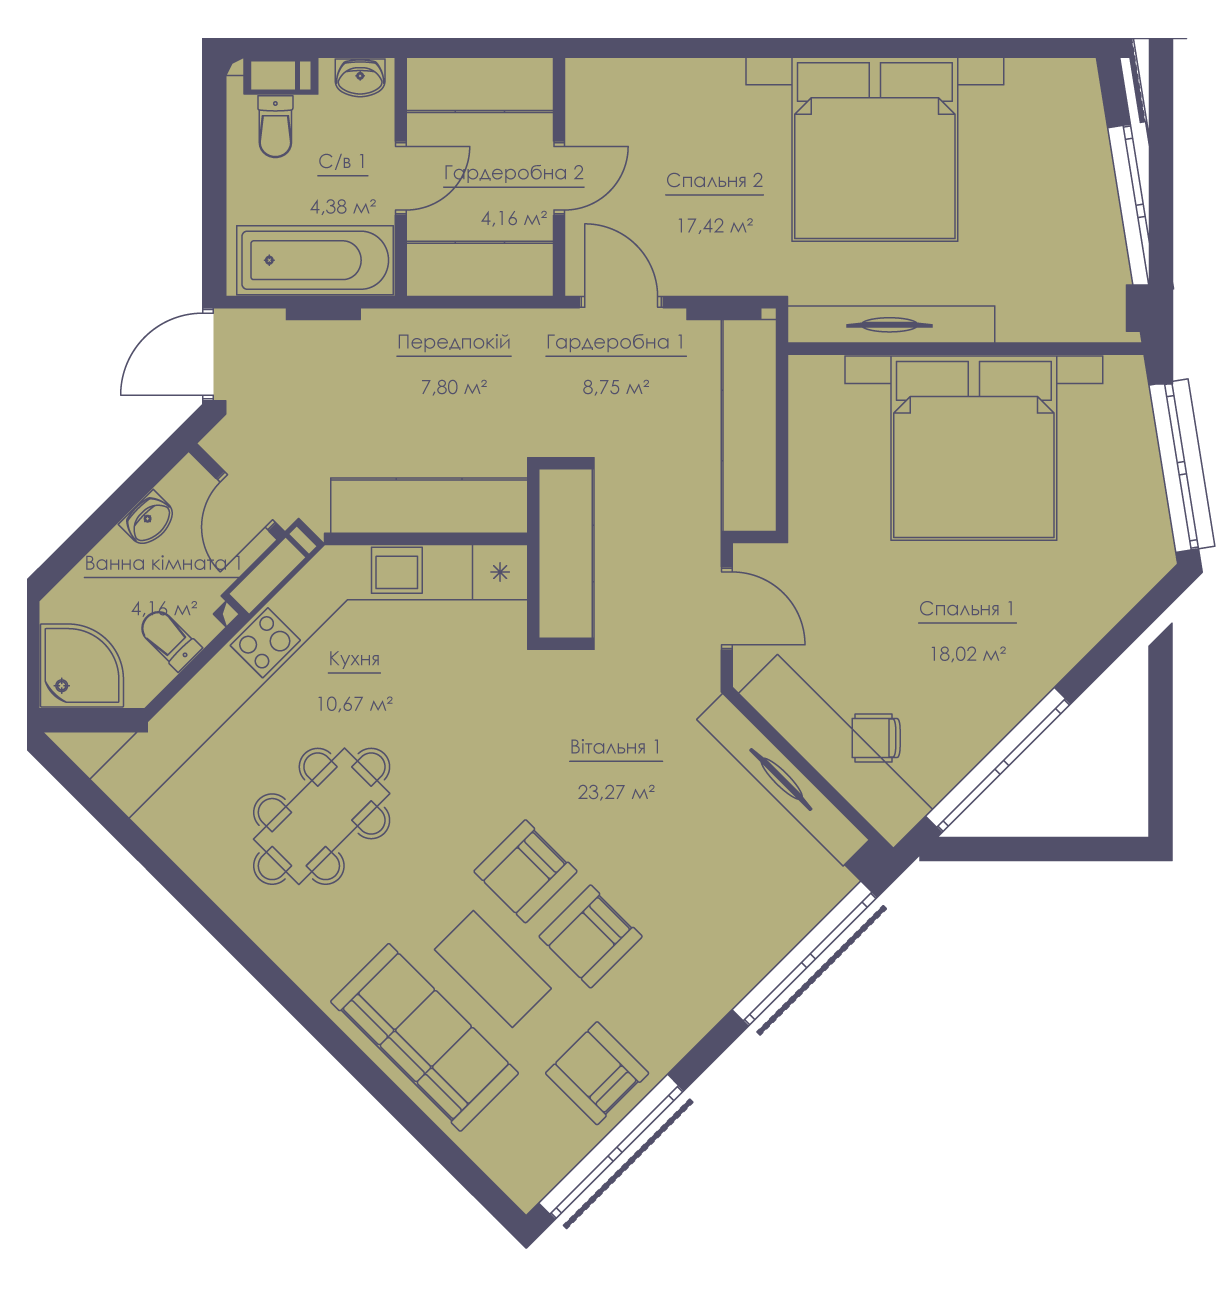 Apartment layout KV_37_3a_1_1_12-1